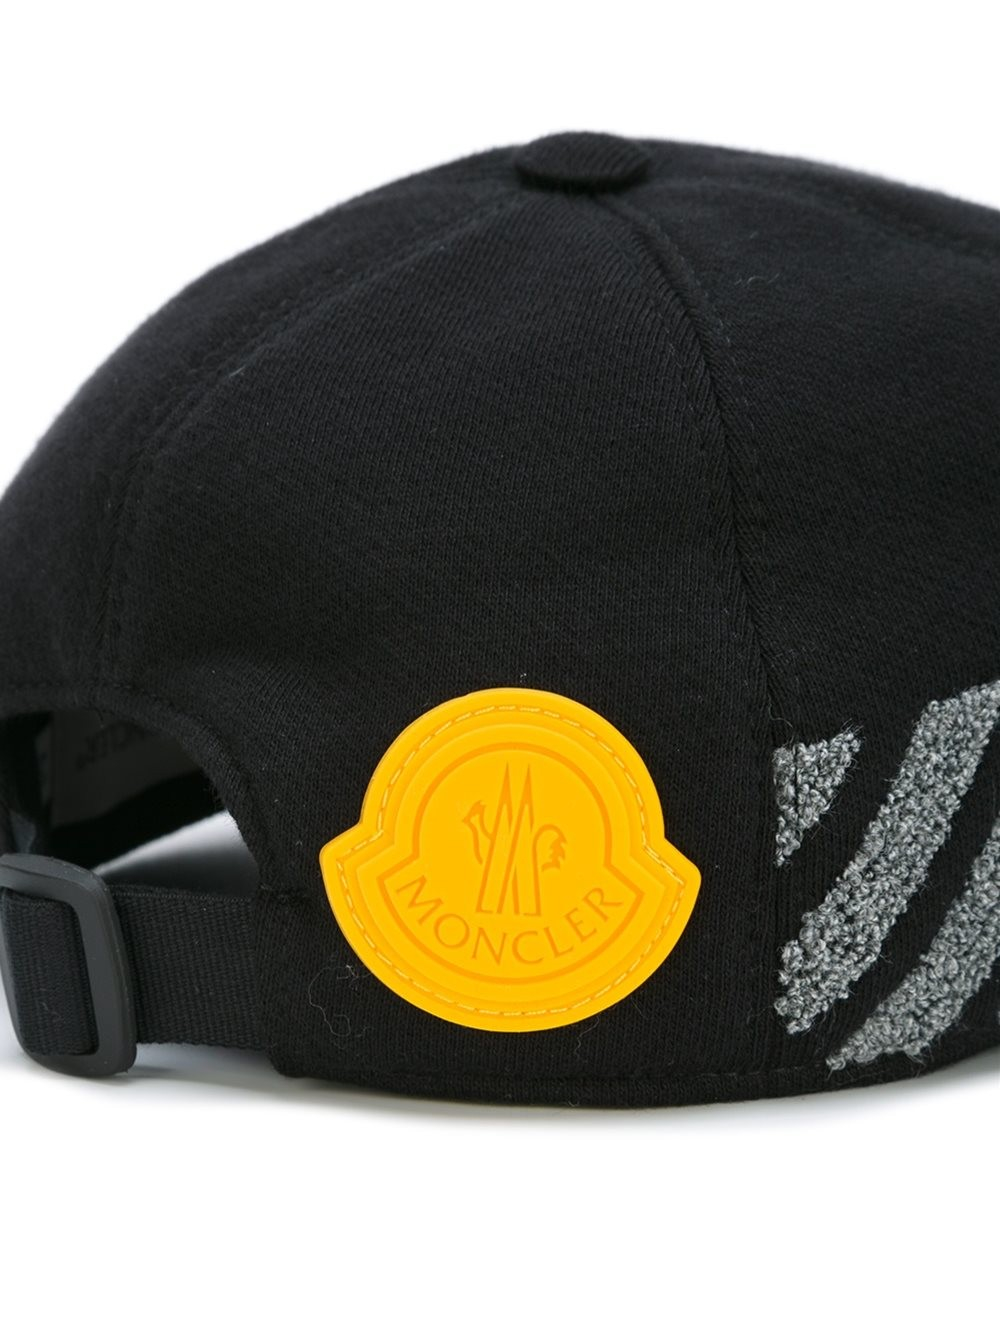 37ed80d83d66 Lyst - Moncler X Off-white White Widow Embriodered Cap in Black for Men